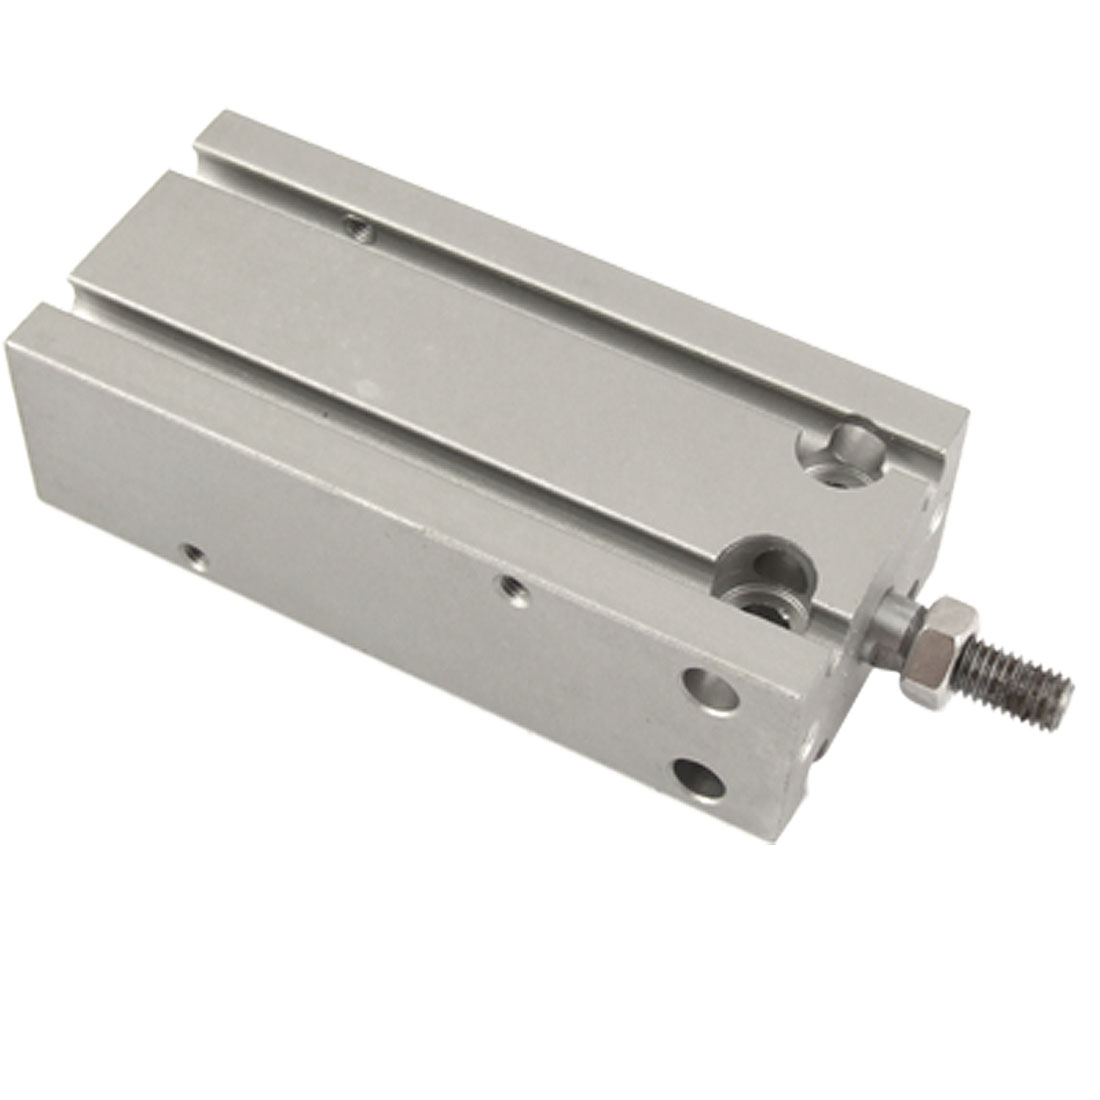 16mm Bore 30mm Stroke CDU16-30 Pneumatic Air Cylinder